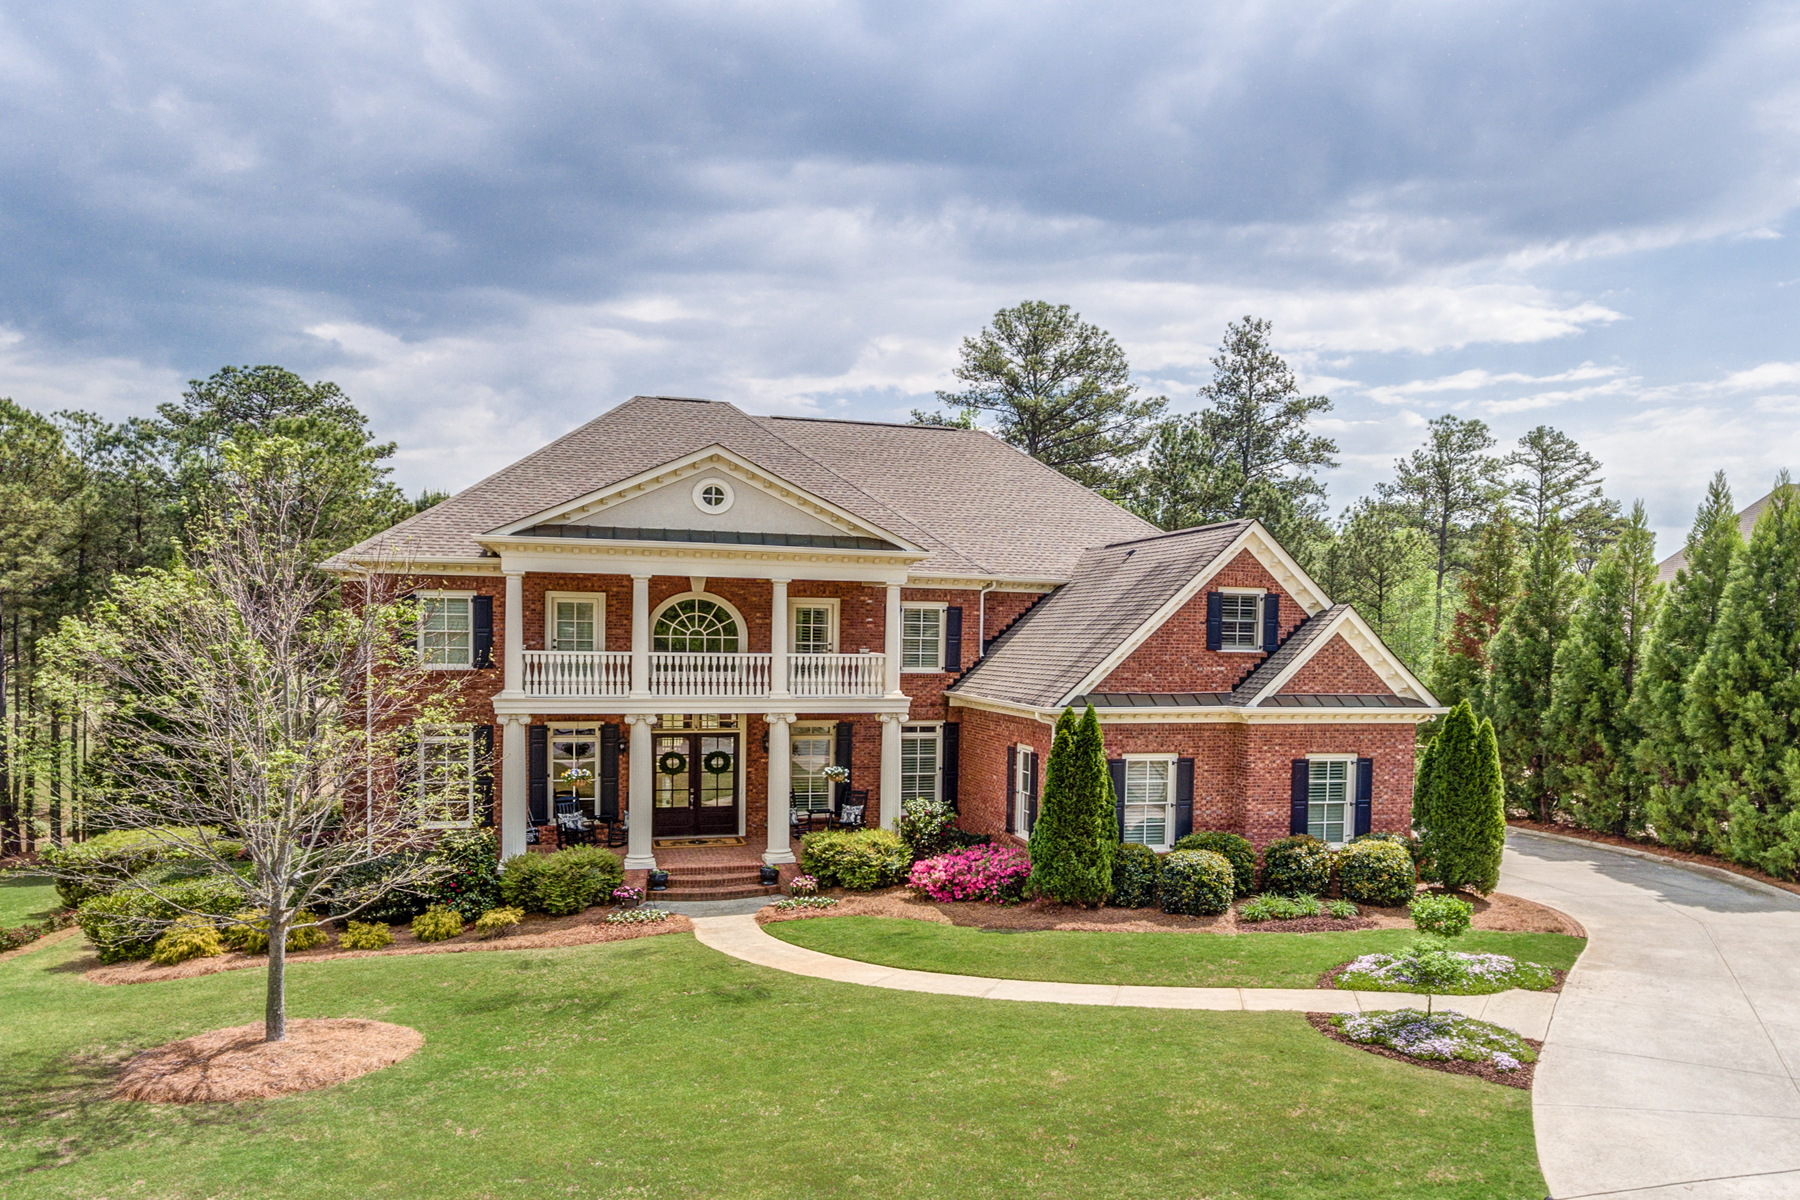 Additional photo for property listing at Luxury Home In Gated Golf Community 4374 Oglethorpe Loop NW Acworth, Γεωργια 30101 Ηνωμενεσ Πολιτειεσ